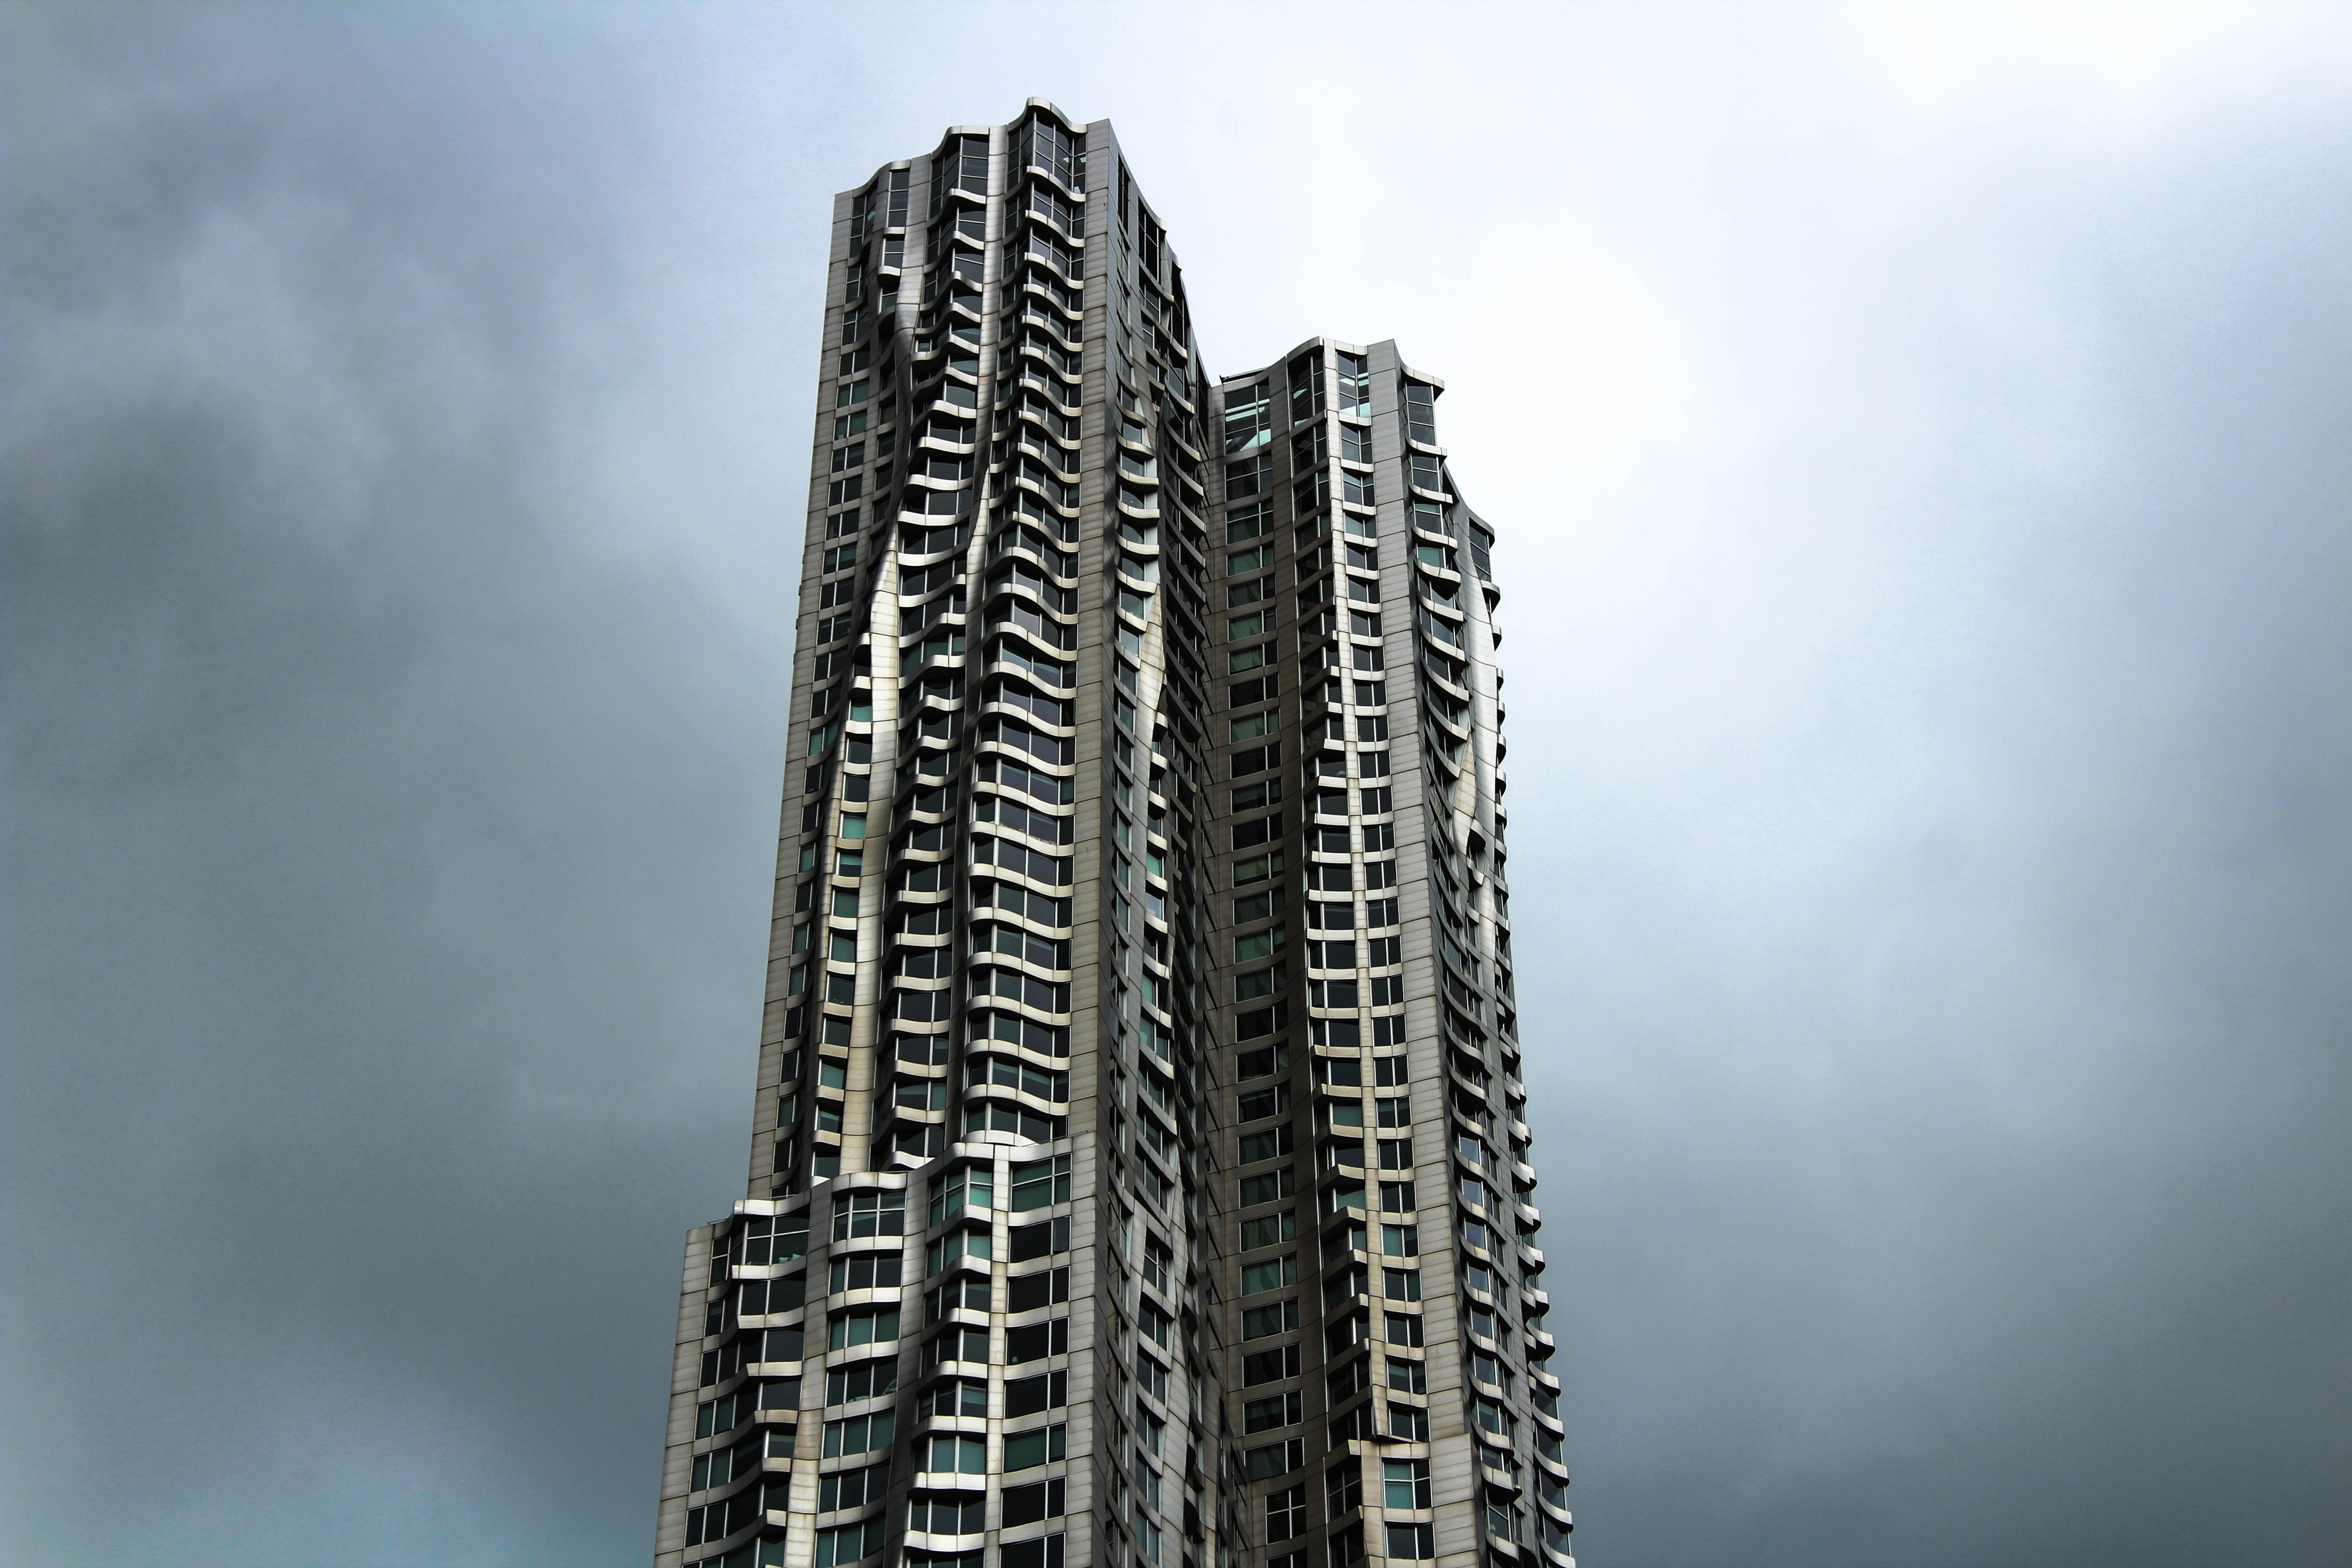 Twin skyscrapers with undulating curved facade rise against the gray sky.